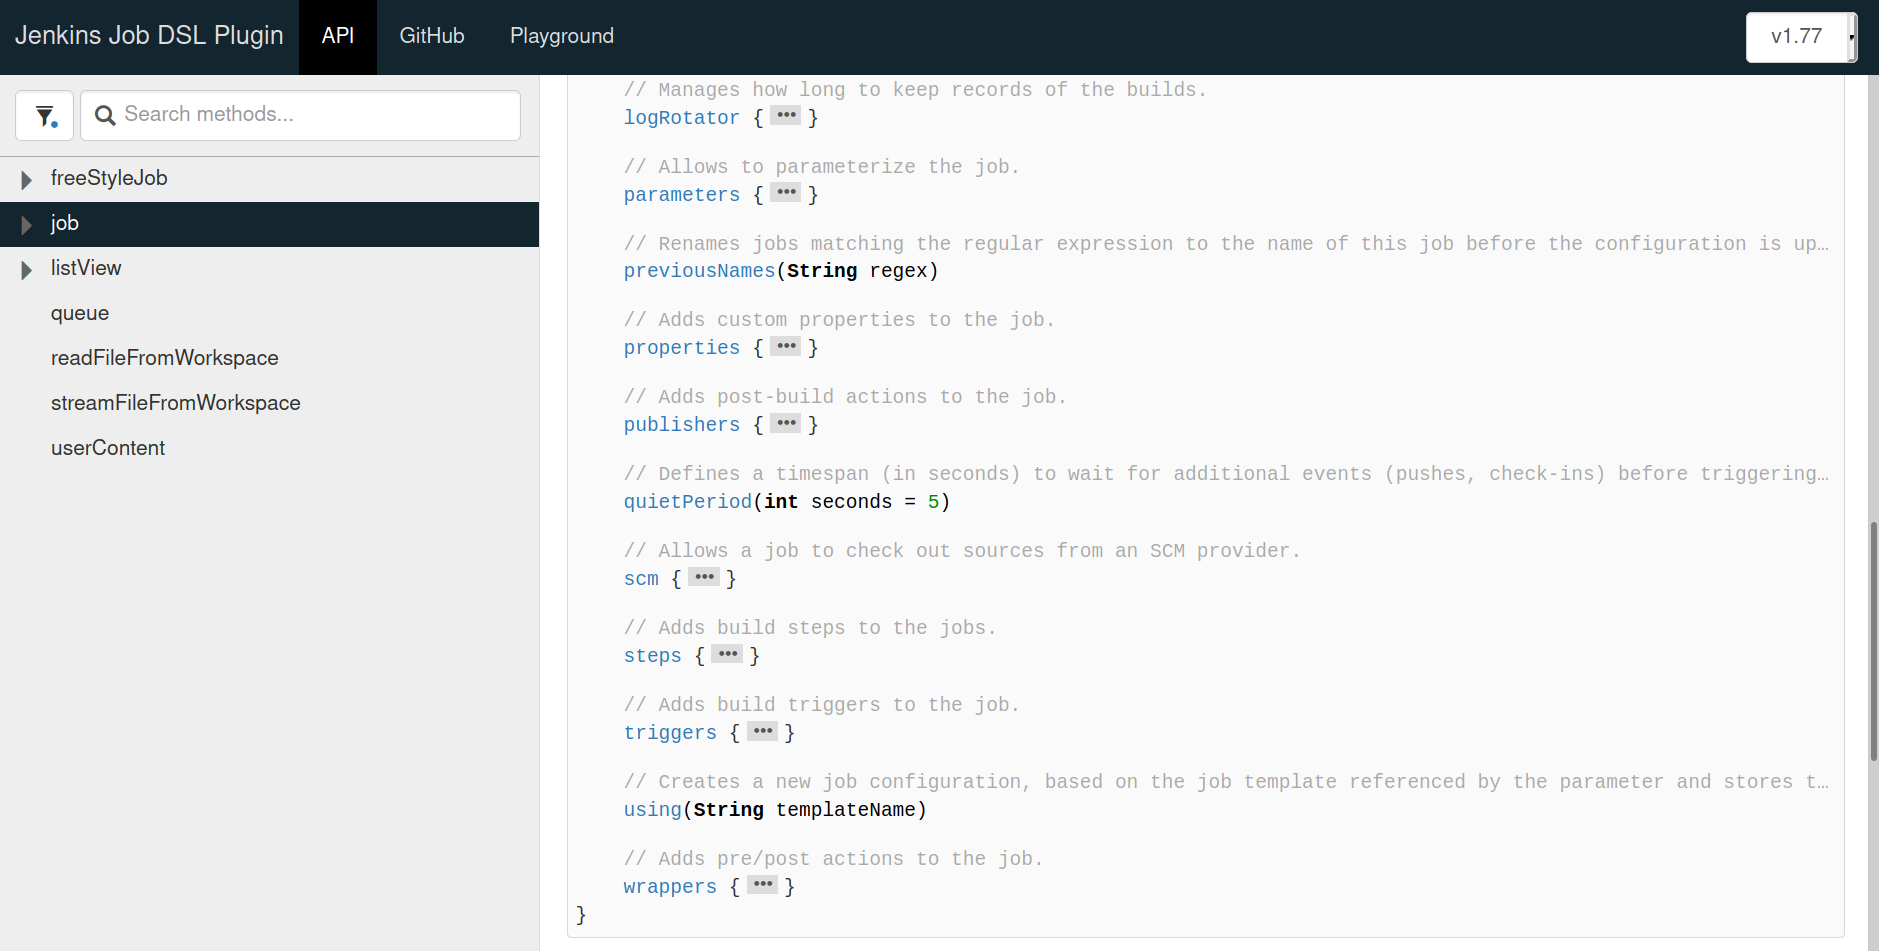 Expanded view of the job API method reference